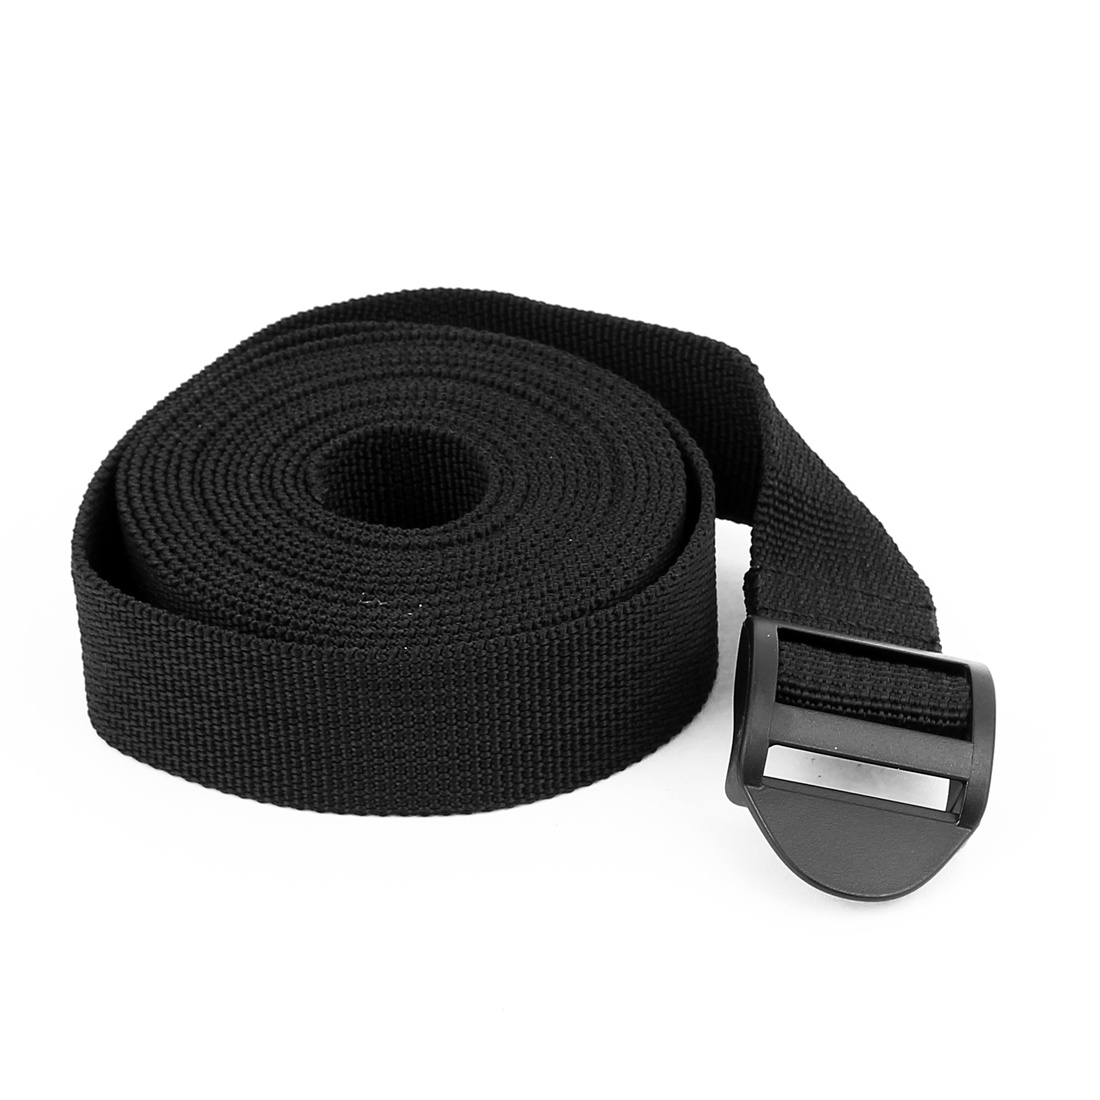 Outdoor Travel Plastic Release Buckle Adjustable Luggage Backpack Packing Strap Belt 3Meter x 25mm